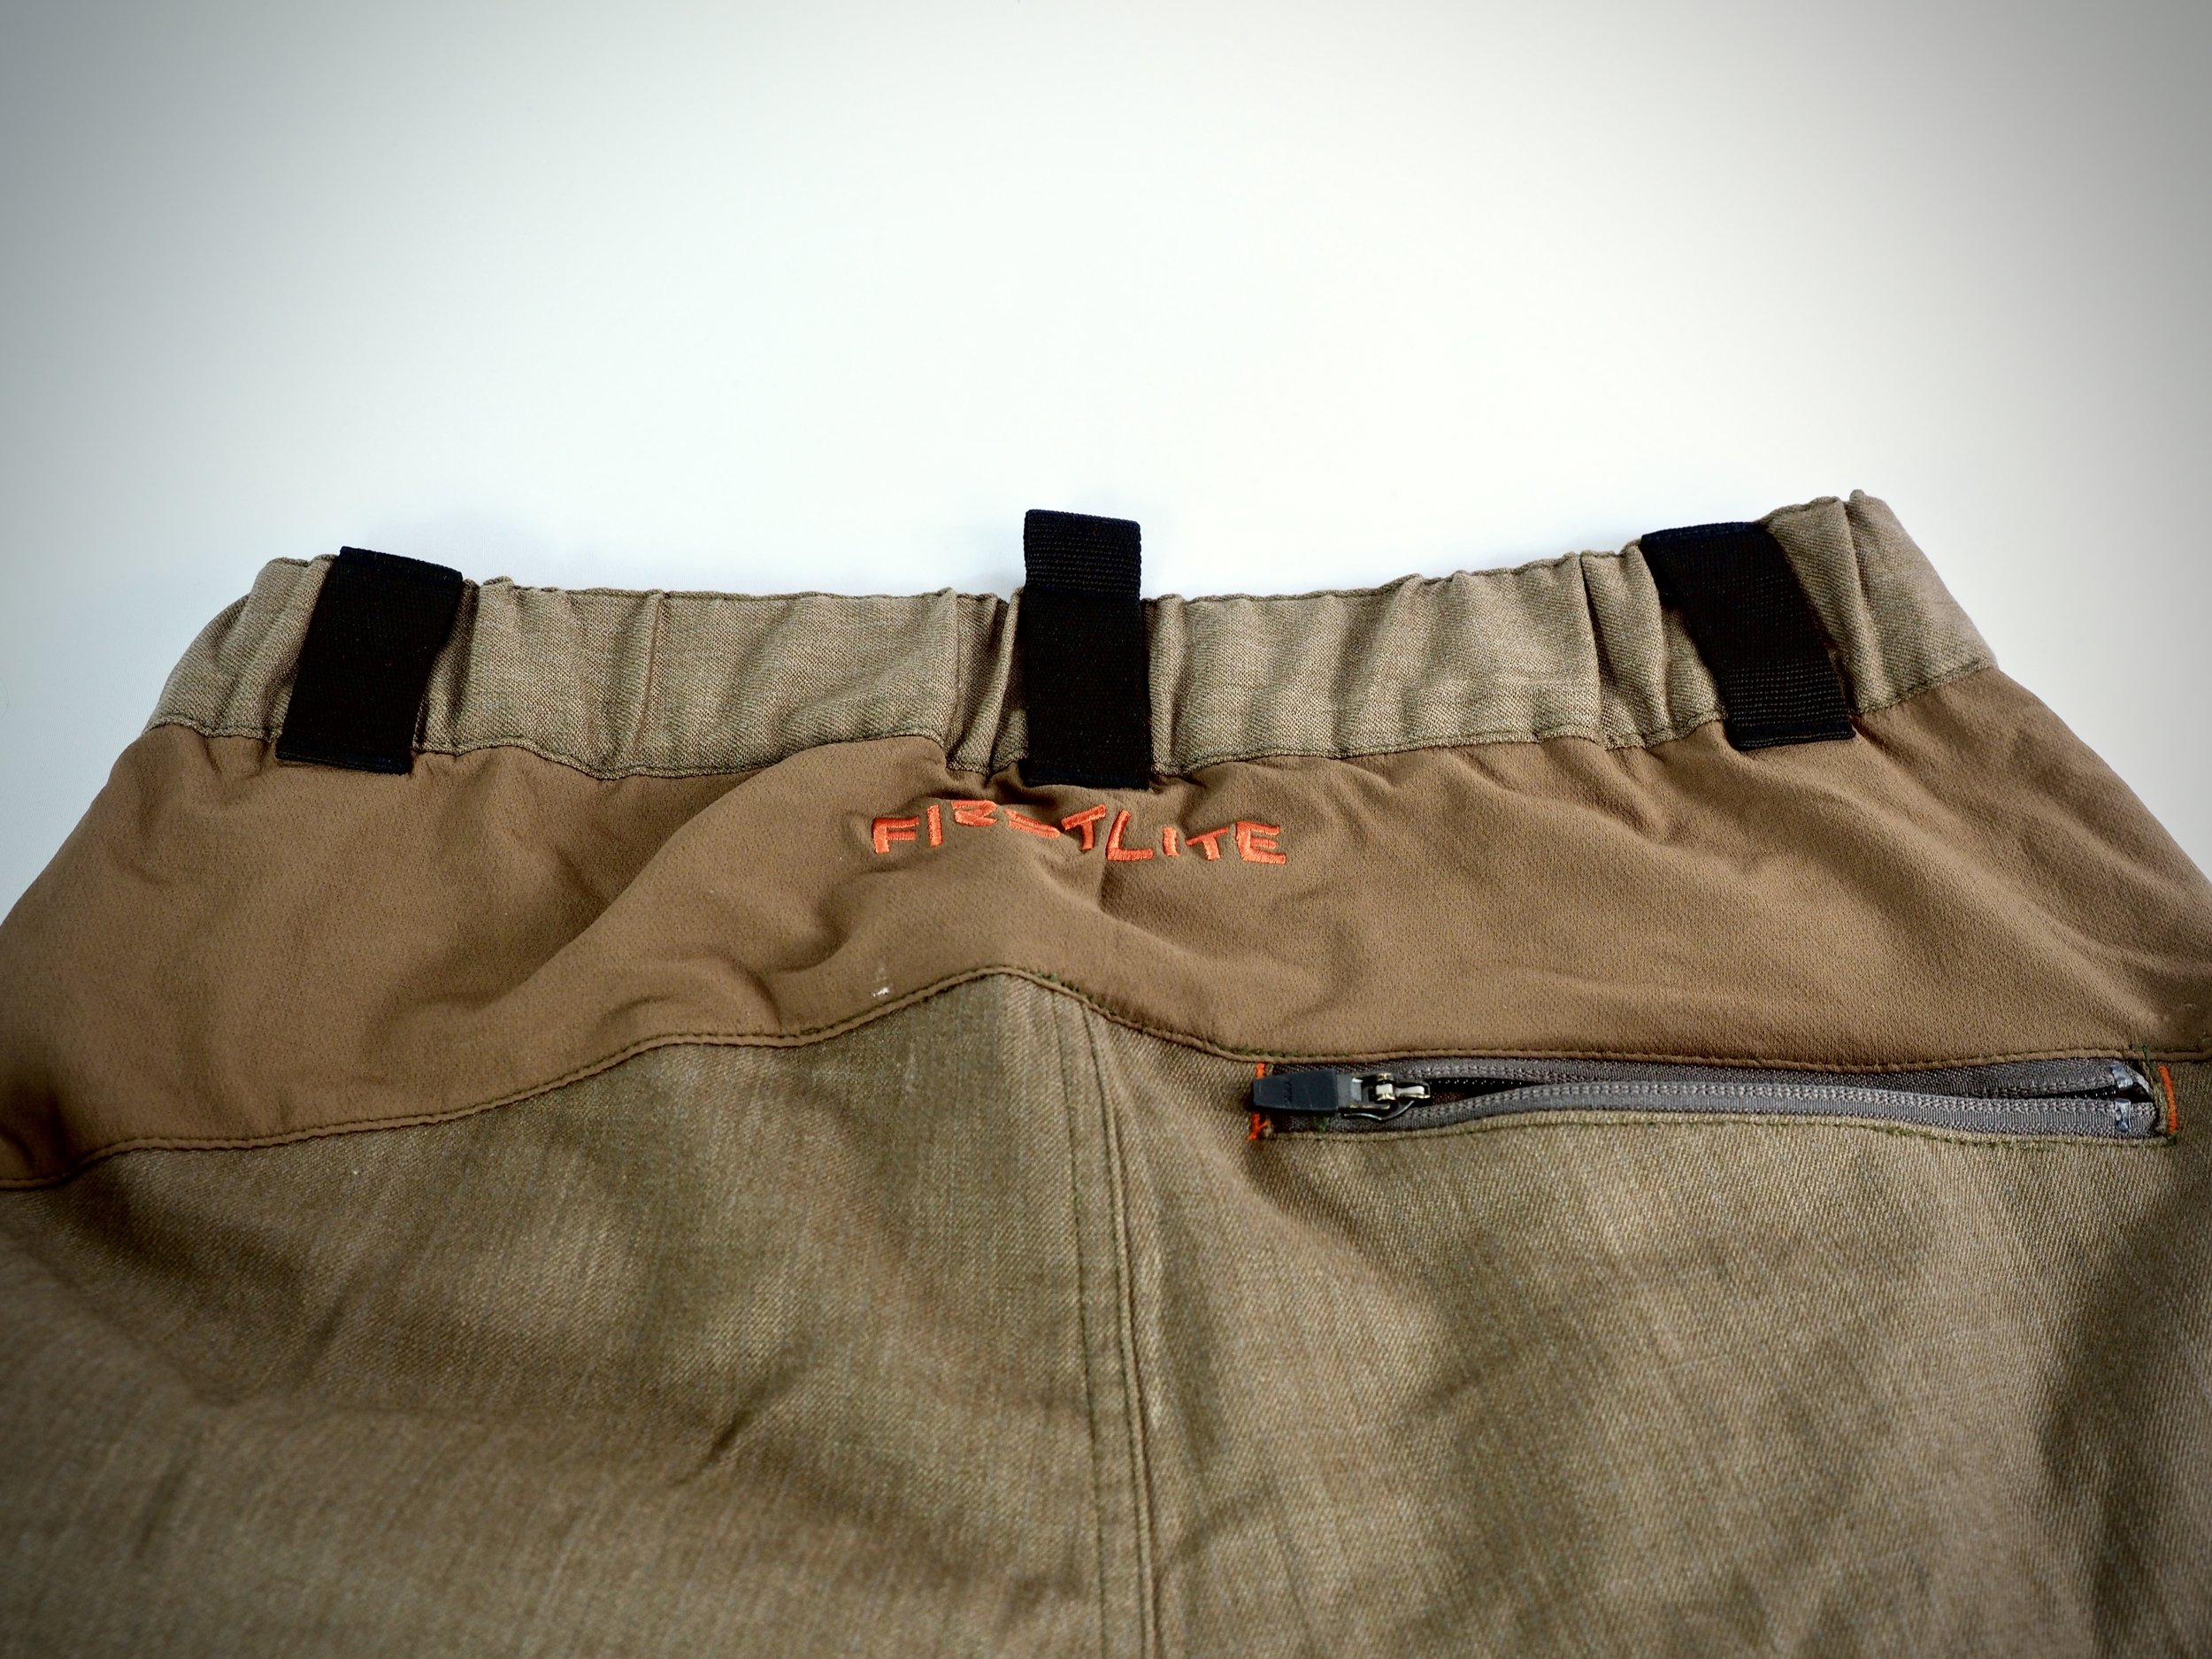 Another shot of the stretch panel and bulky belt loops.